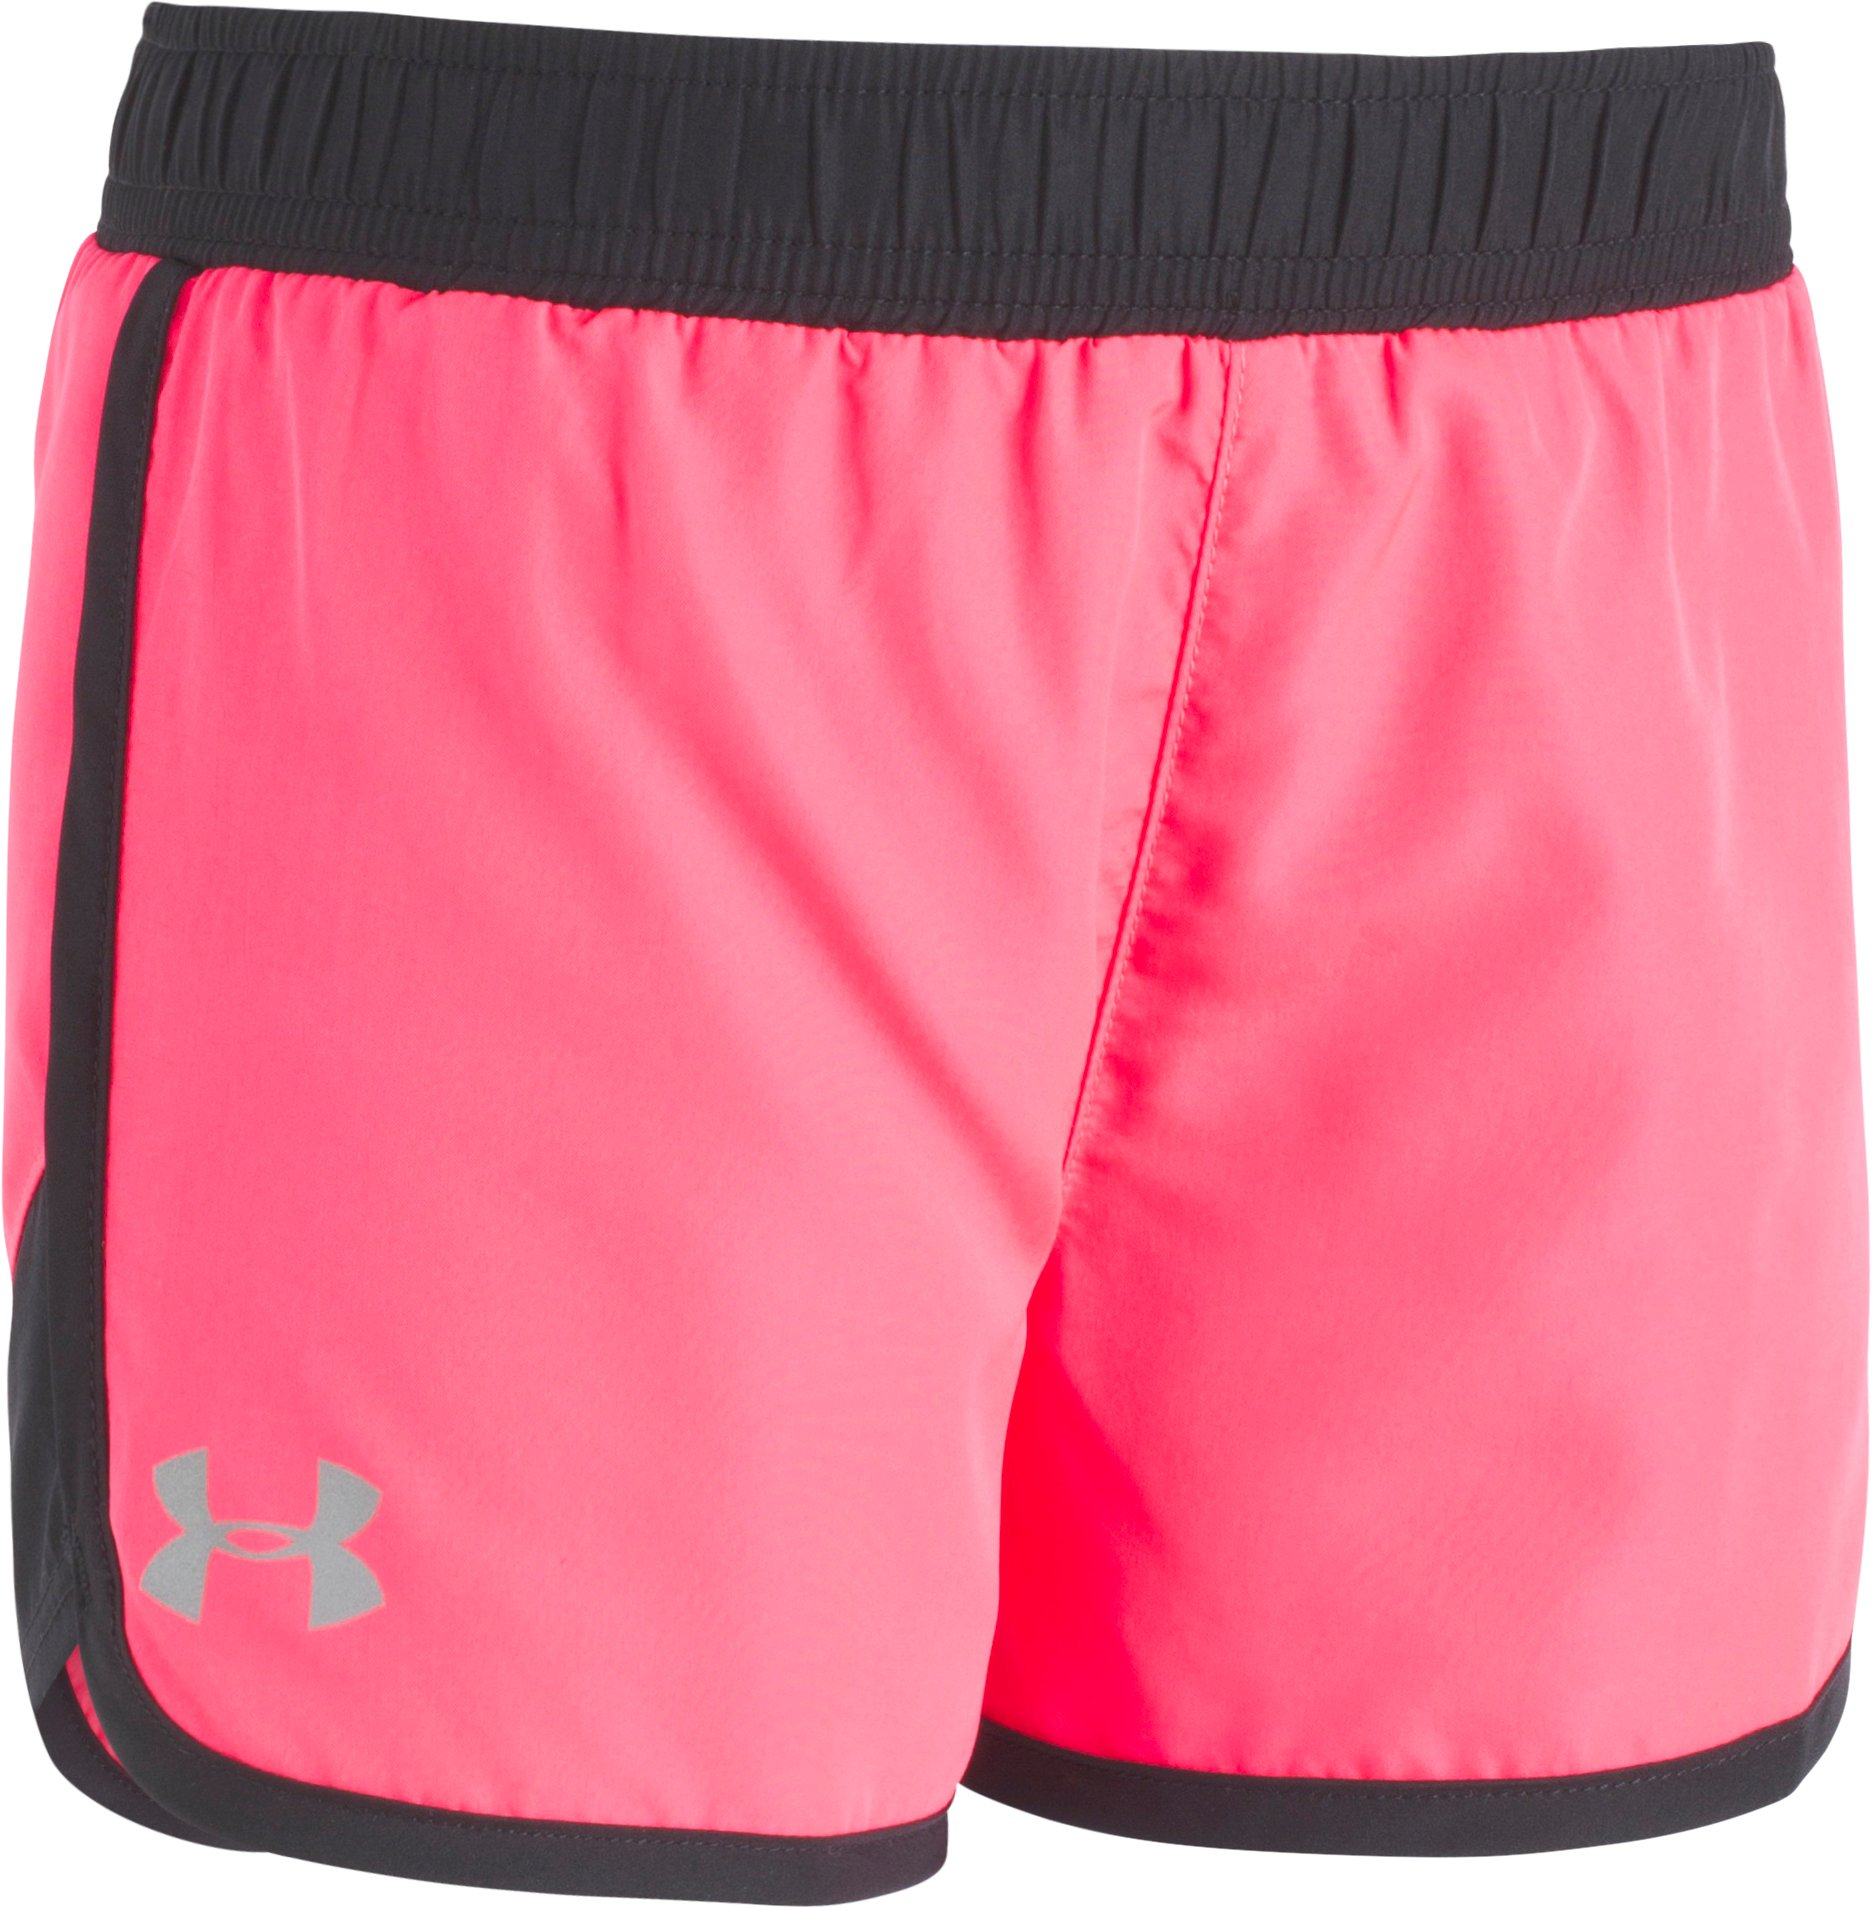 Girls' Pre-School  UA Fast Lane Shorts, PENTA PINK